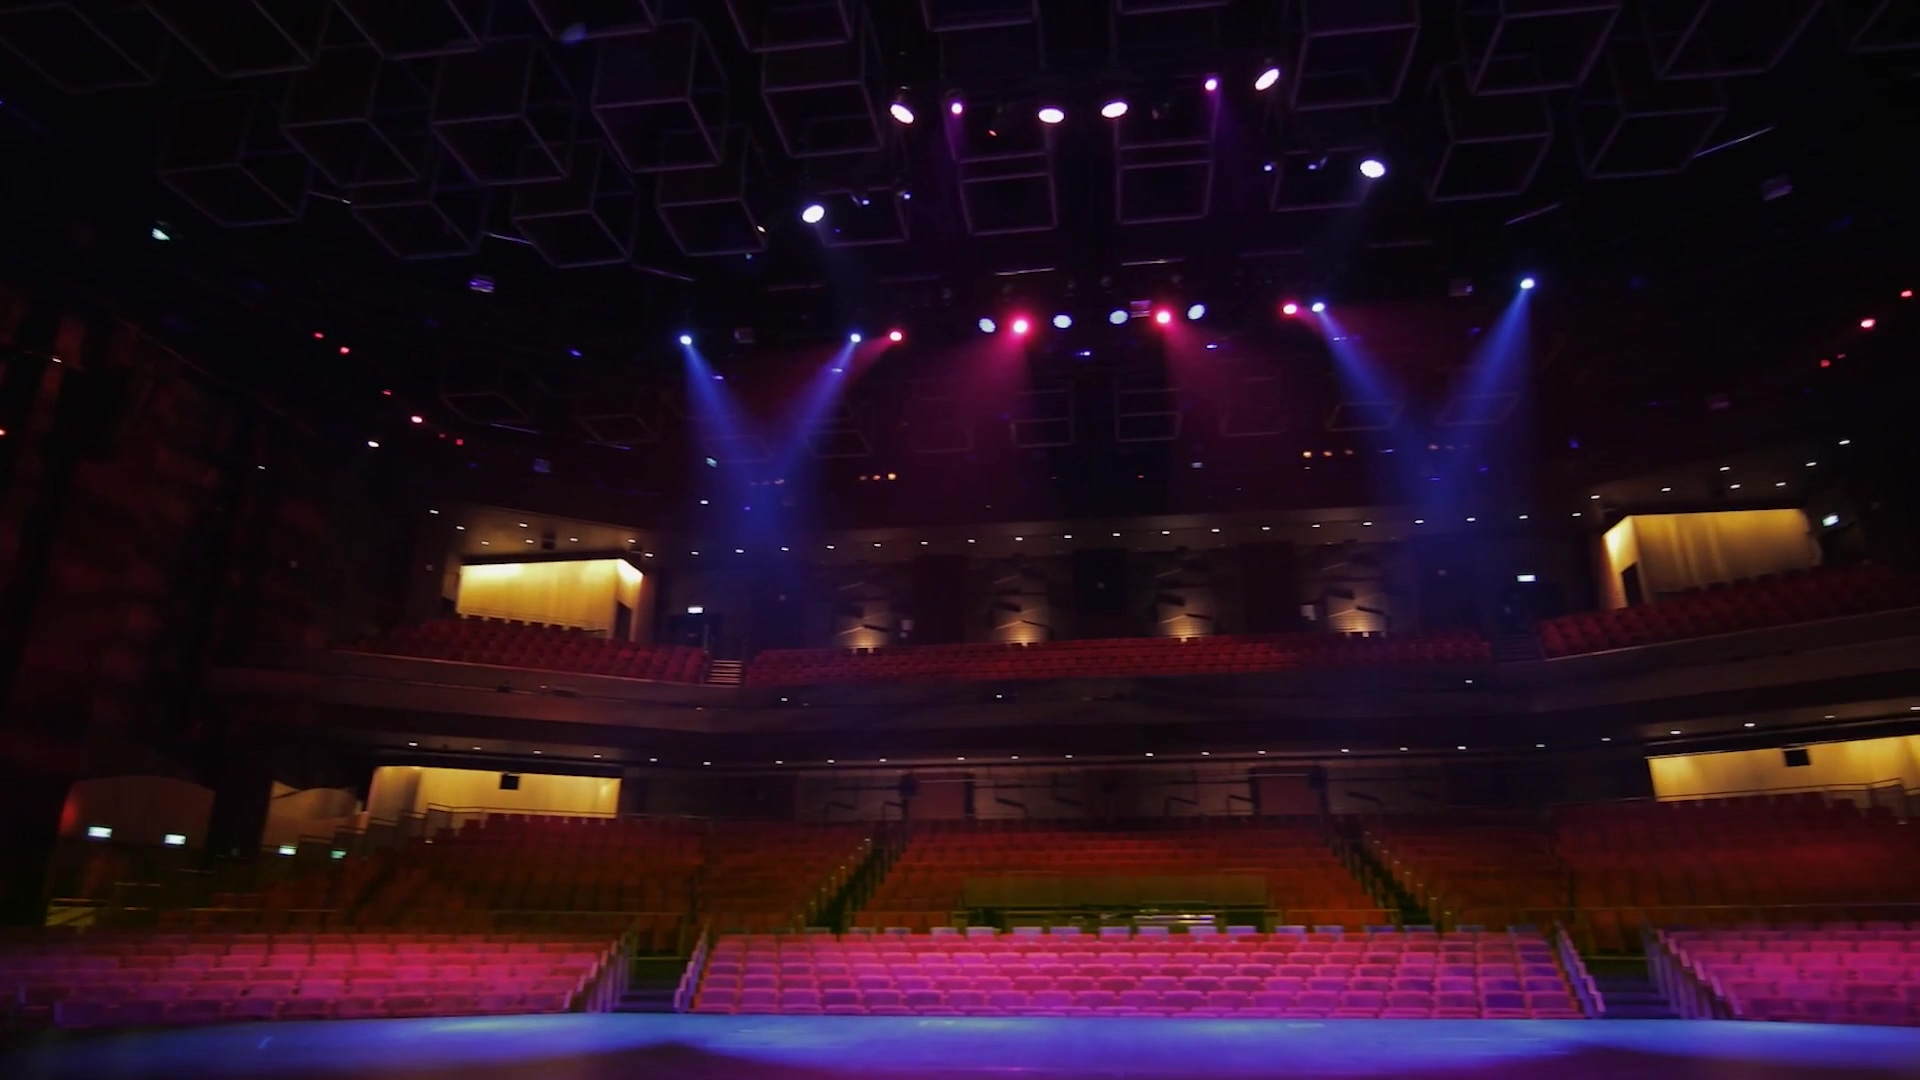 Asias First Dynamic Theatre at MGM COTAI, by Electrosonic  - 1080p